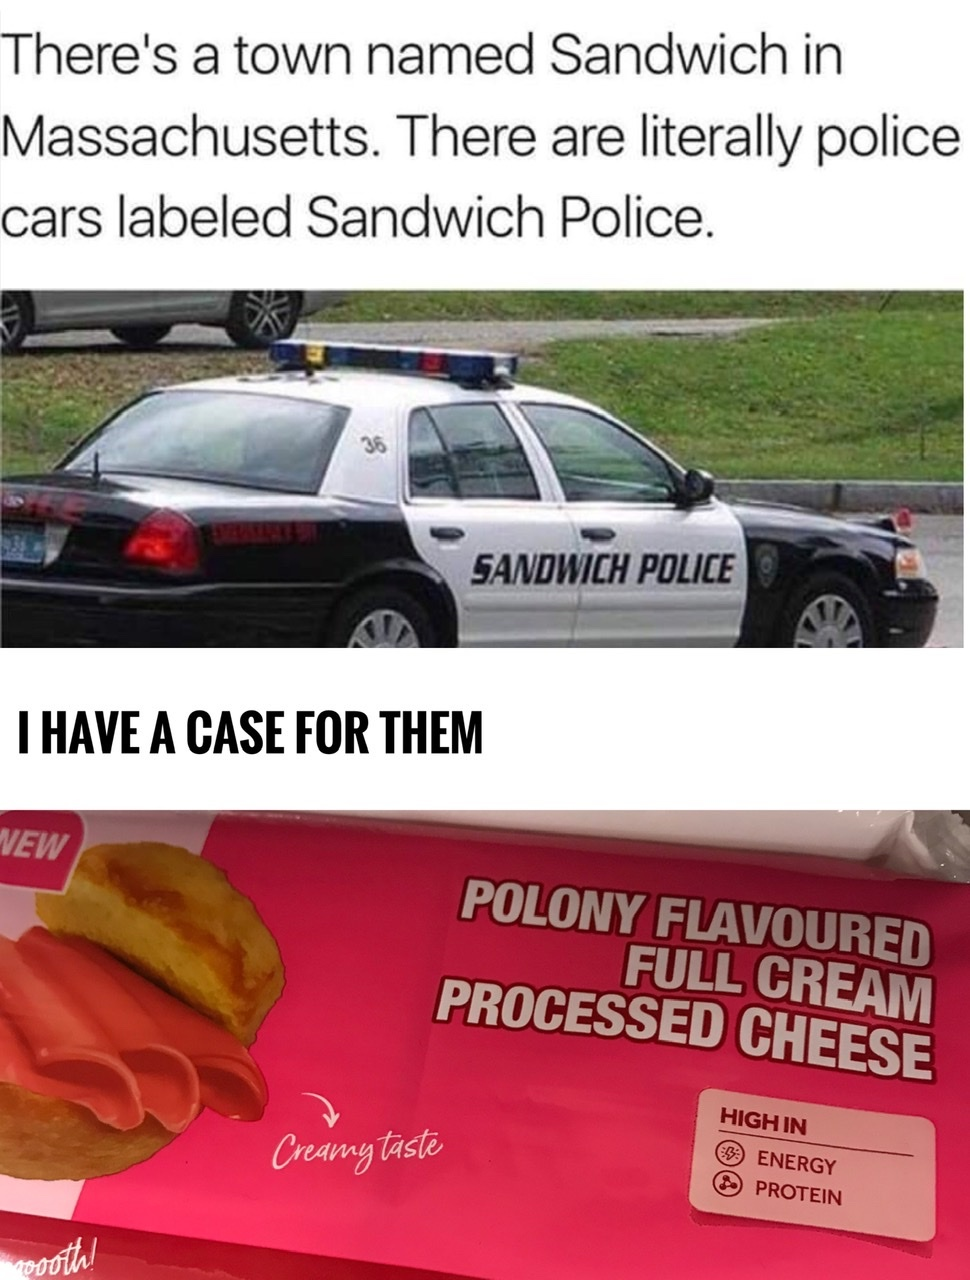 Processed cheese is wrong. Processed meat flavoured processed cheese is wronger - meme